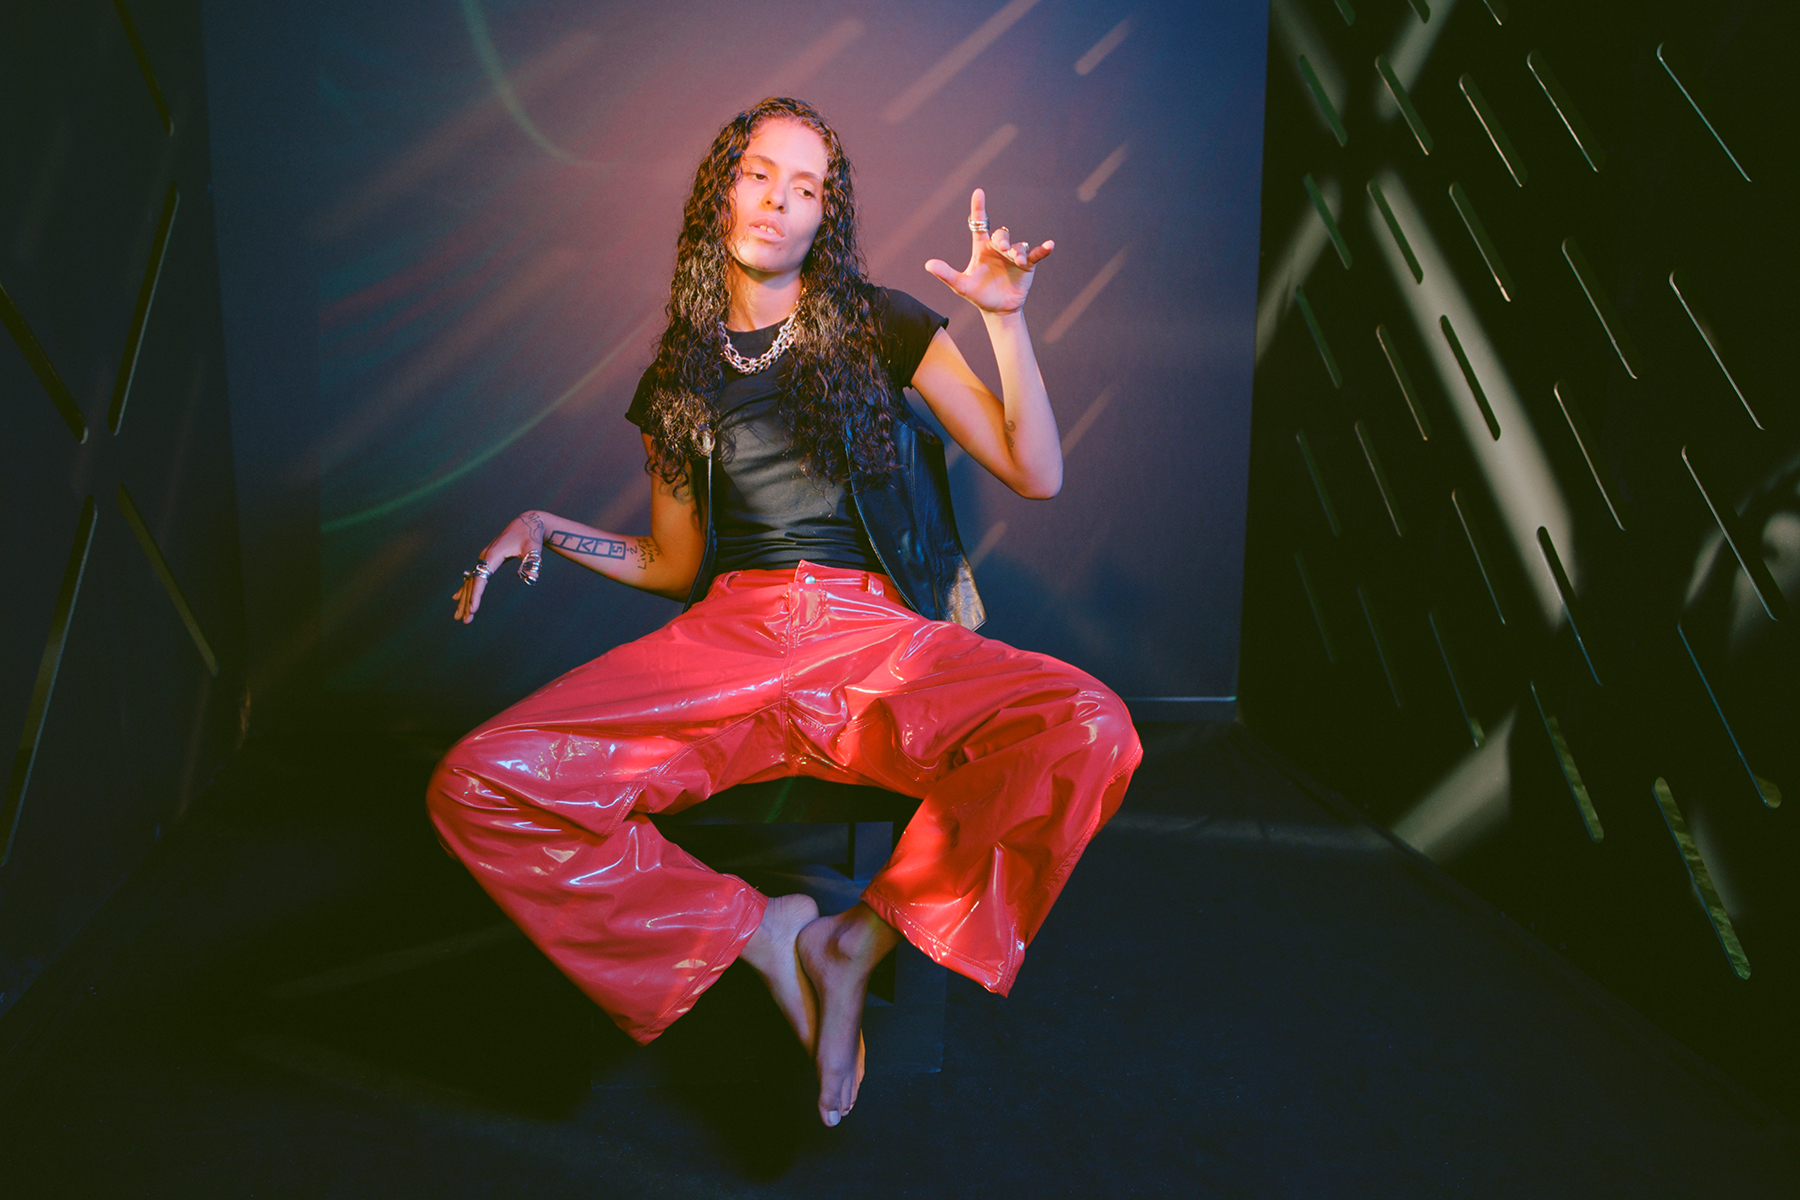 070 Shake: Artist You Need to Know - Rolling Stone